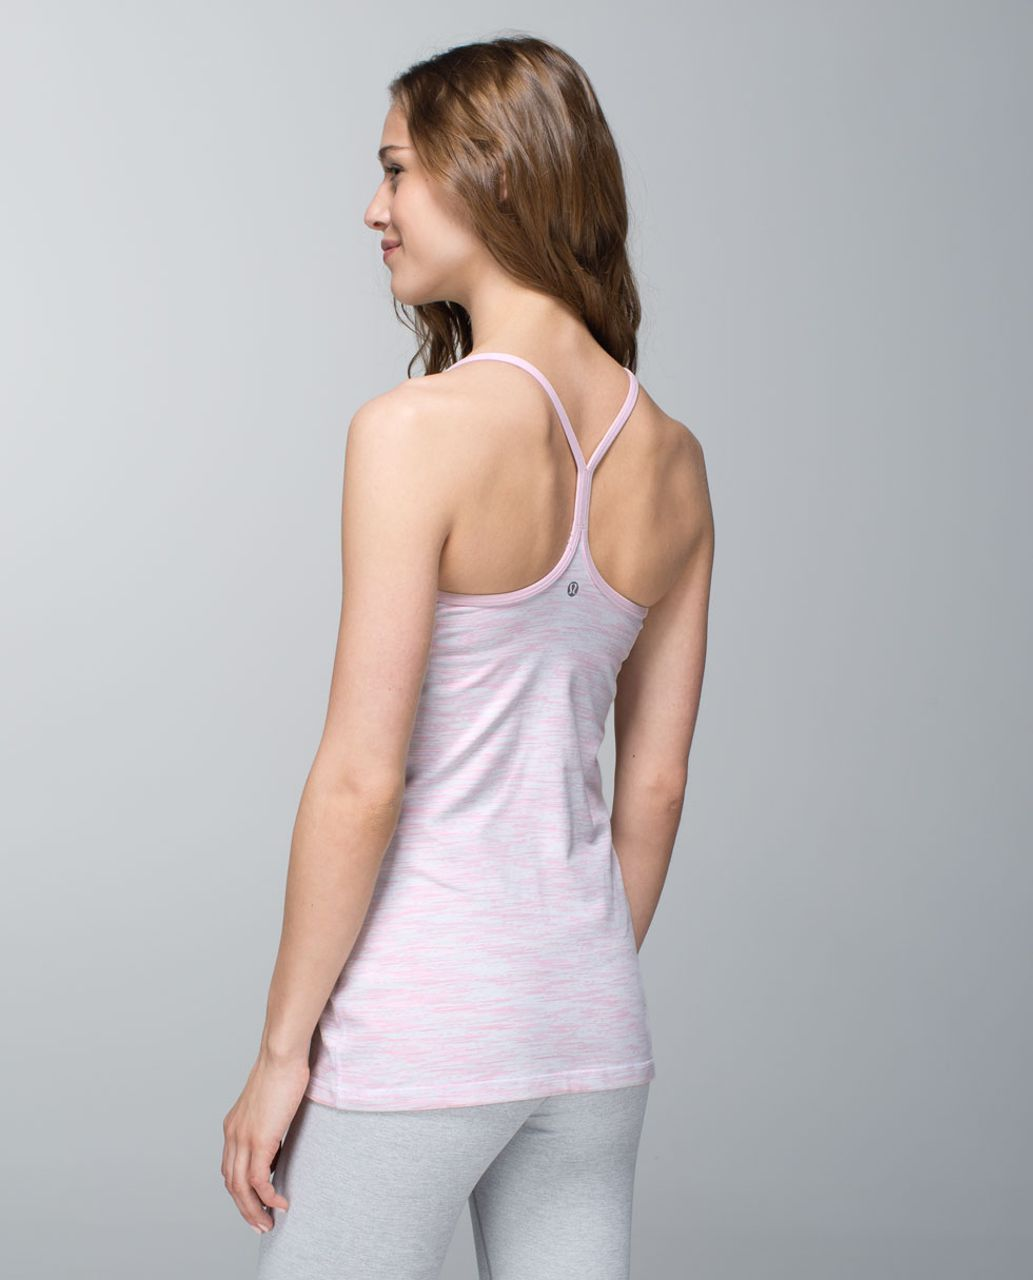 Lululemon Power Y Tank *Luon - Wee Are From Space White Barely Pink / Barely Pink